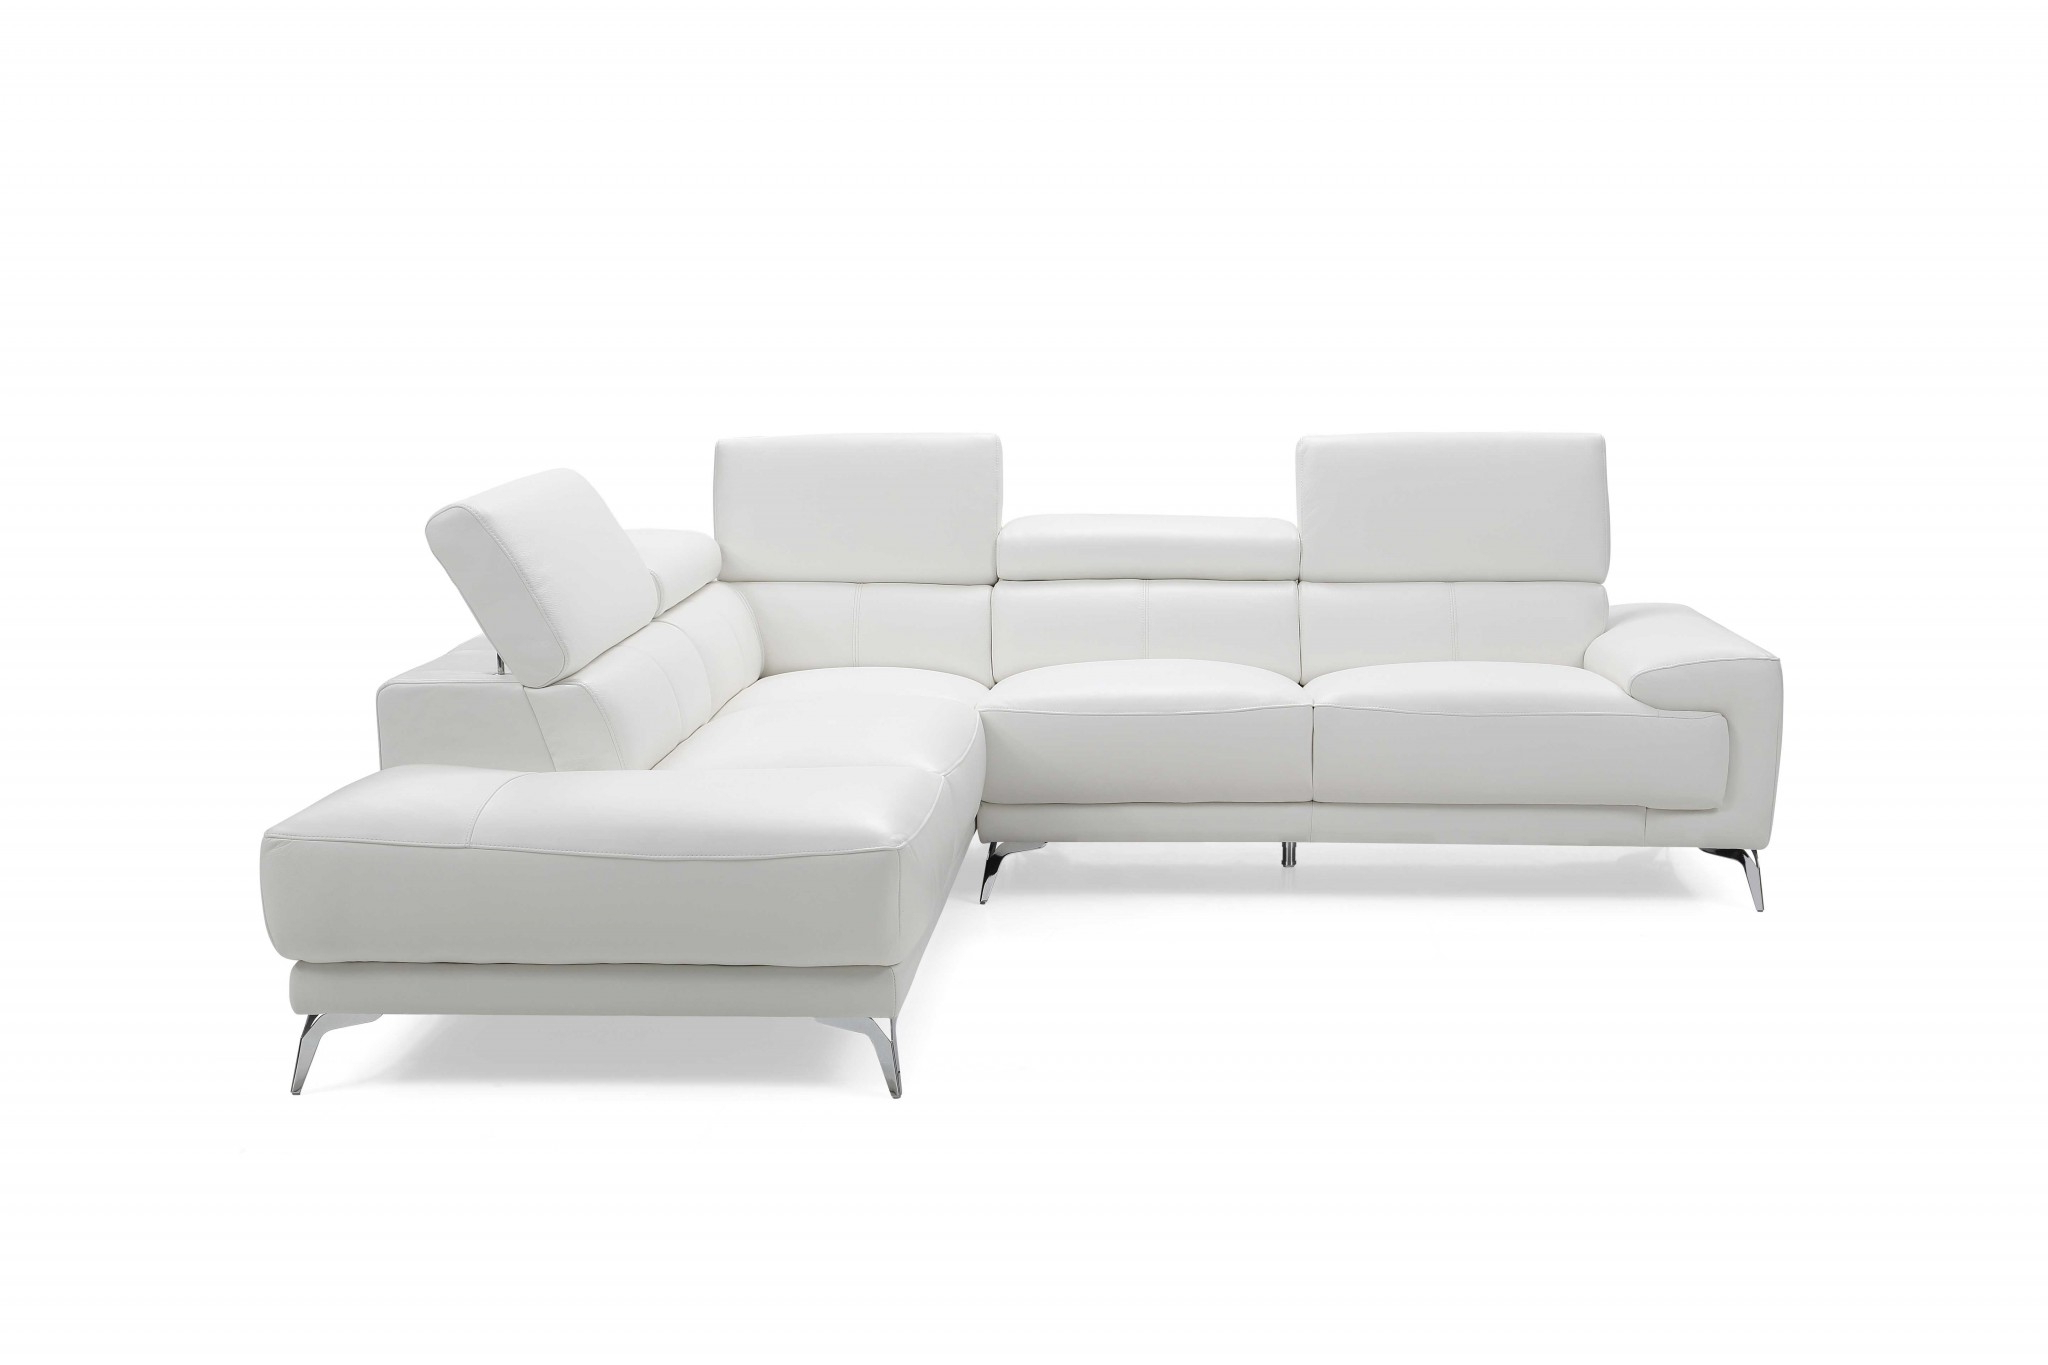 [%sectional, Chaise On Right When Facing, White Top Grain Throughout Most Current Matilda 100% Top Grain Leather Chaise Sectional Sofas|matilda 100% Top Grain Leather Chaise Sectional Sofas Throughout Well Known Sectional, Chaise On Right When Facing, White Top Grain|well Known Matilda 100% Top Grain Leather Chaise Sectional Sofas Regarding Sectional, Chaise On Right When Facing, White Top Grain|most Up To Date Sectional, Chaise On Right When Facing, White Top Grain Intended For Matilda 100% Top Grain Leather Chaise Sectional Sofas%] (View 7 of 20)